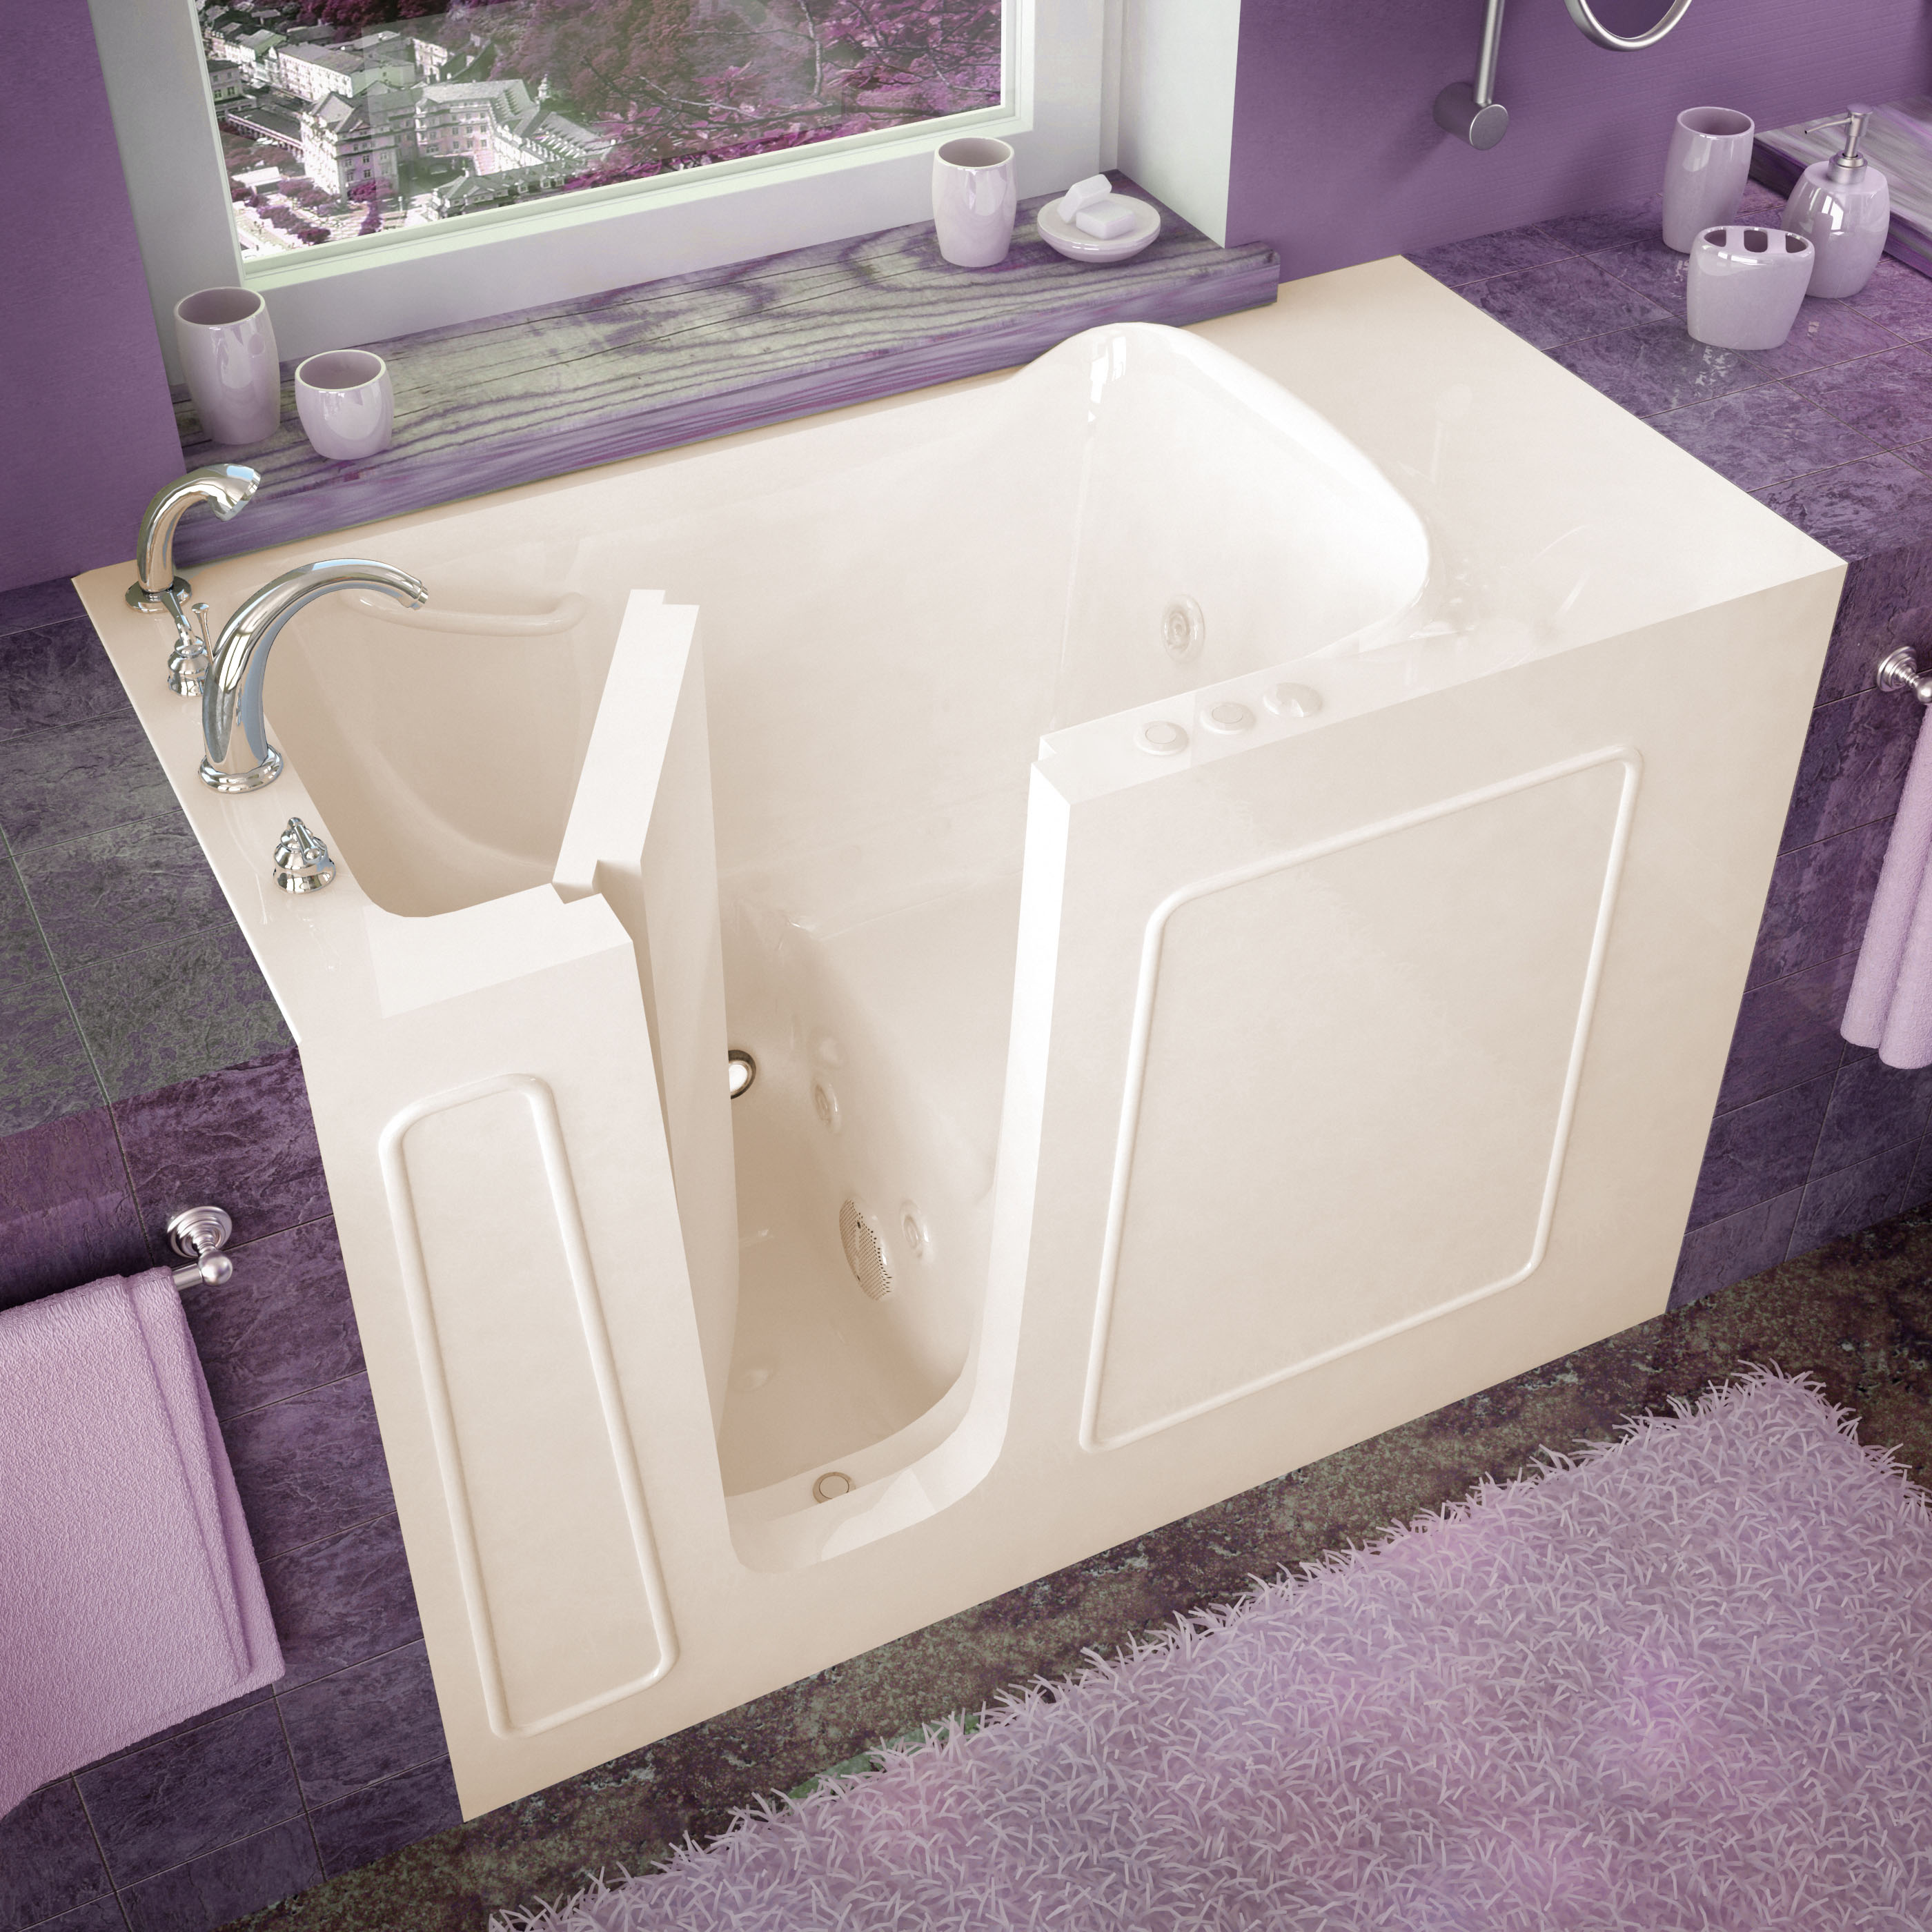 26x53 Left Drain Biscuit Whirlpool Jetted Walk-In Bathtub